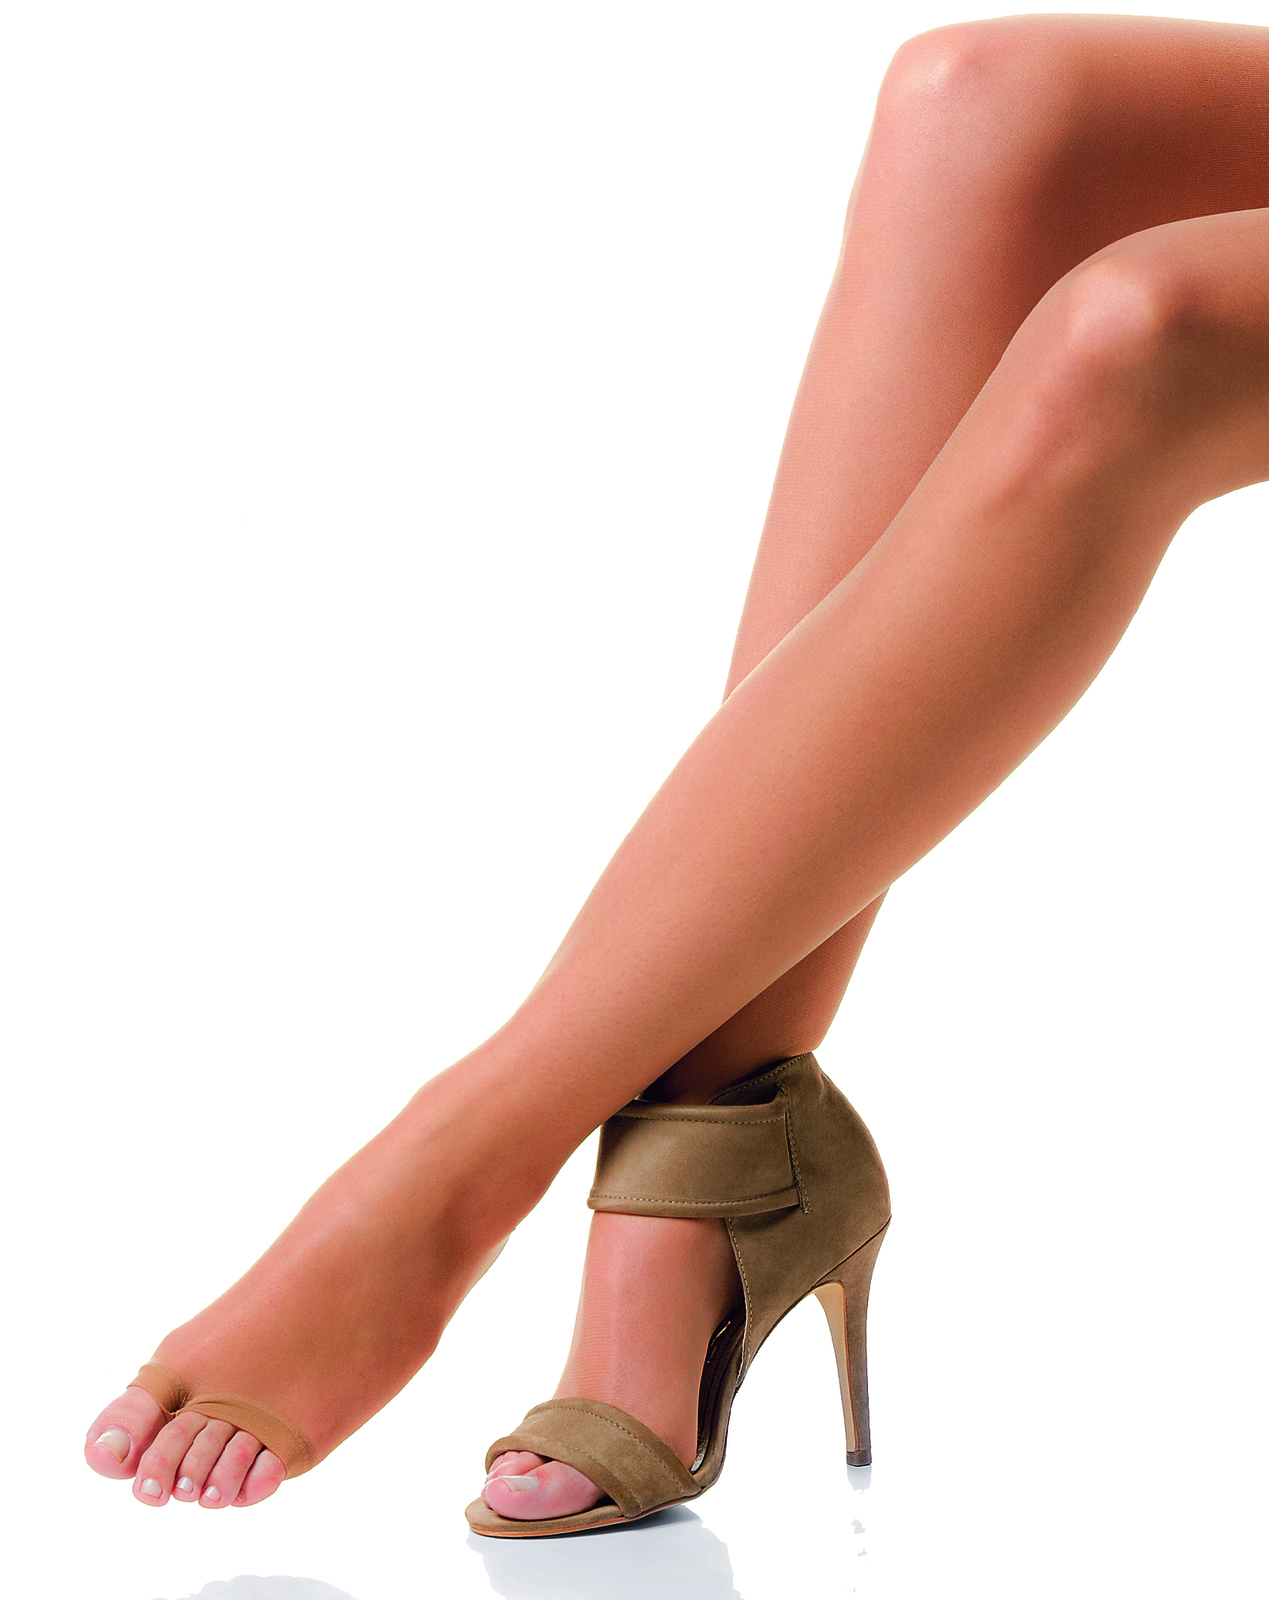 Their Toeless Pantyhose Campaign At 41